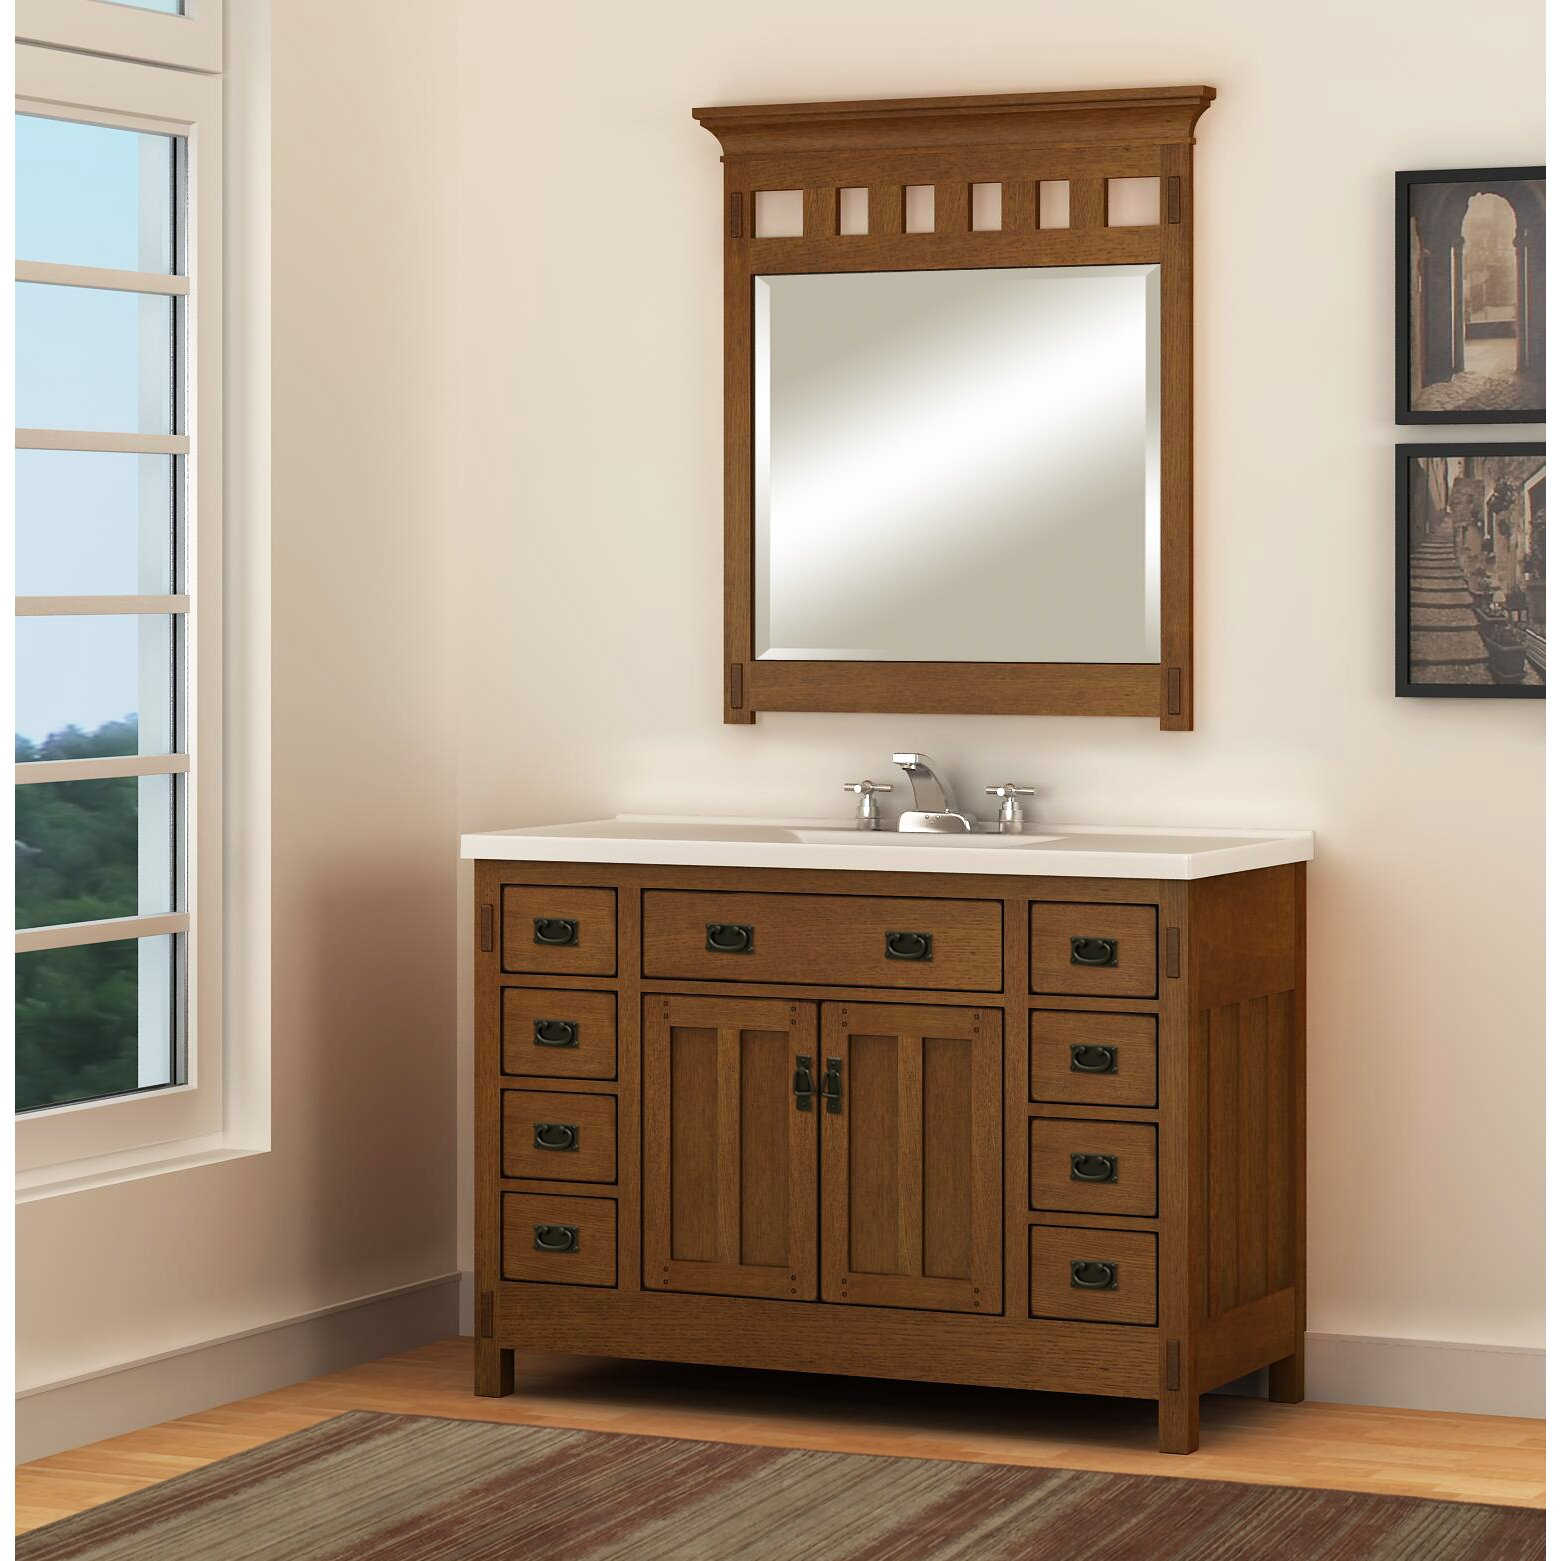 Sagehill premier 49 single bathroom vanity top reviews wayfair Premiere bathroom design reviews